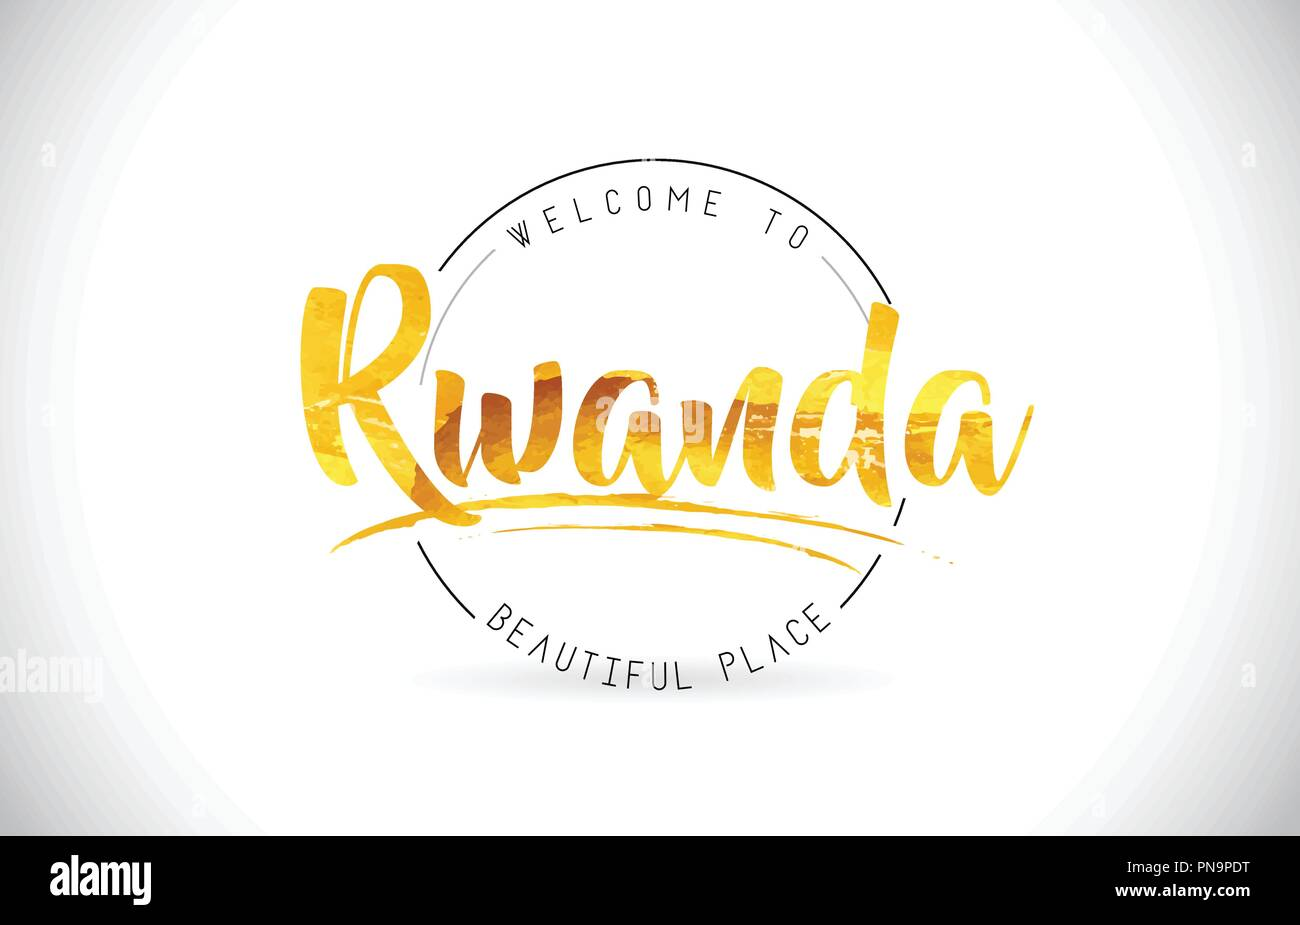 Rwanda Welcome To Word Text with Handwritten Font and Golden Texture Design Illustration Vector. - Stock Vector